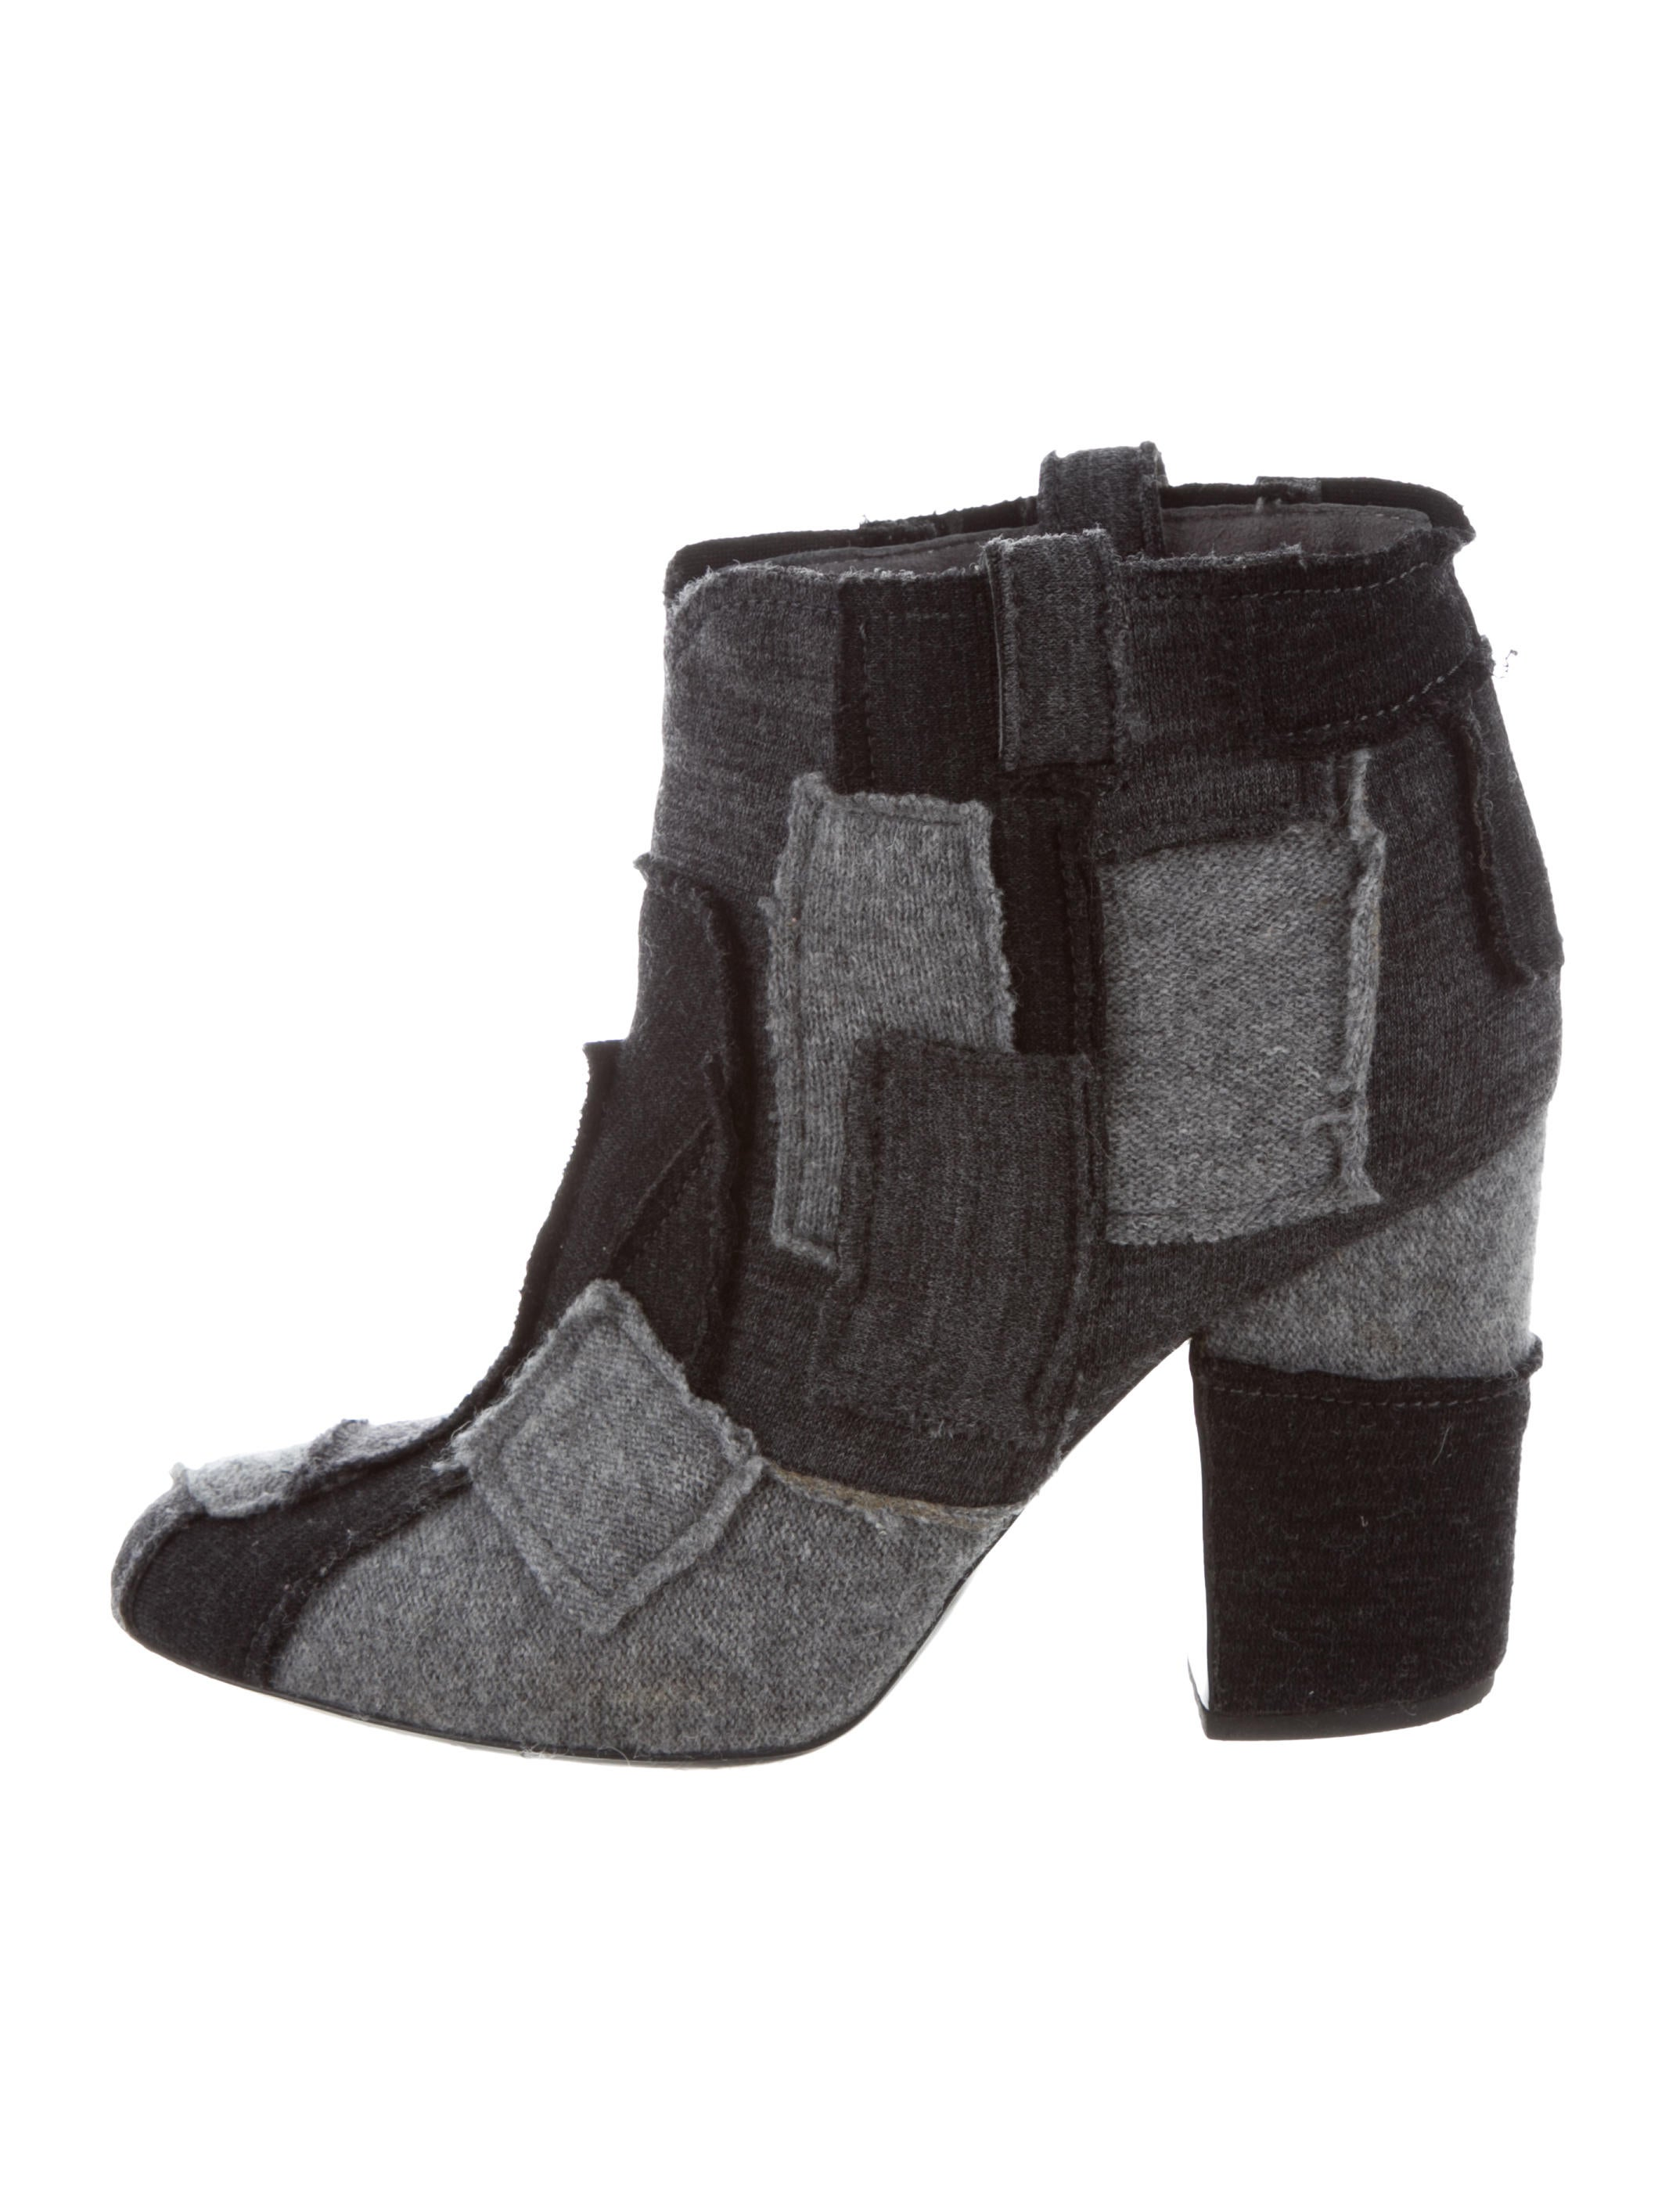 Laurence Dacade Knit Patchwork Booties discount 2015 new V6VMBc